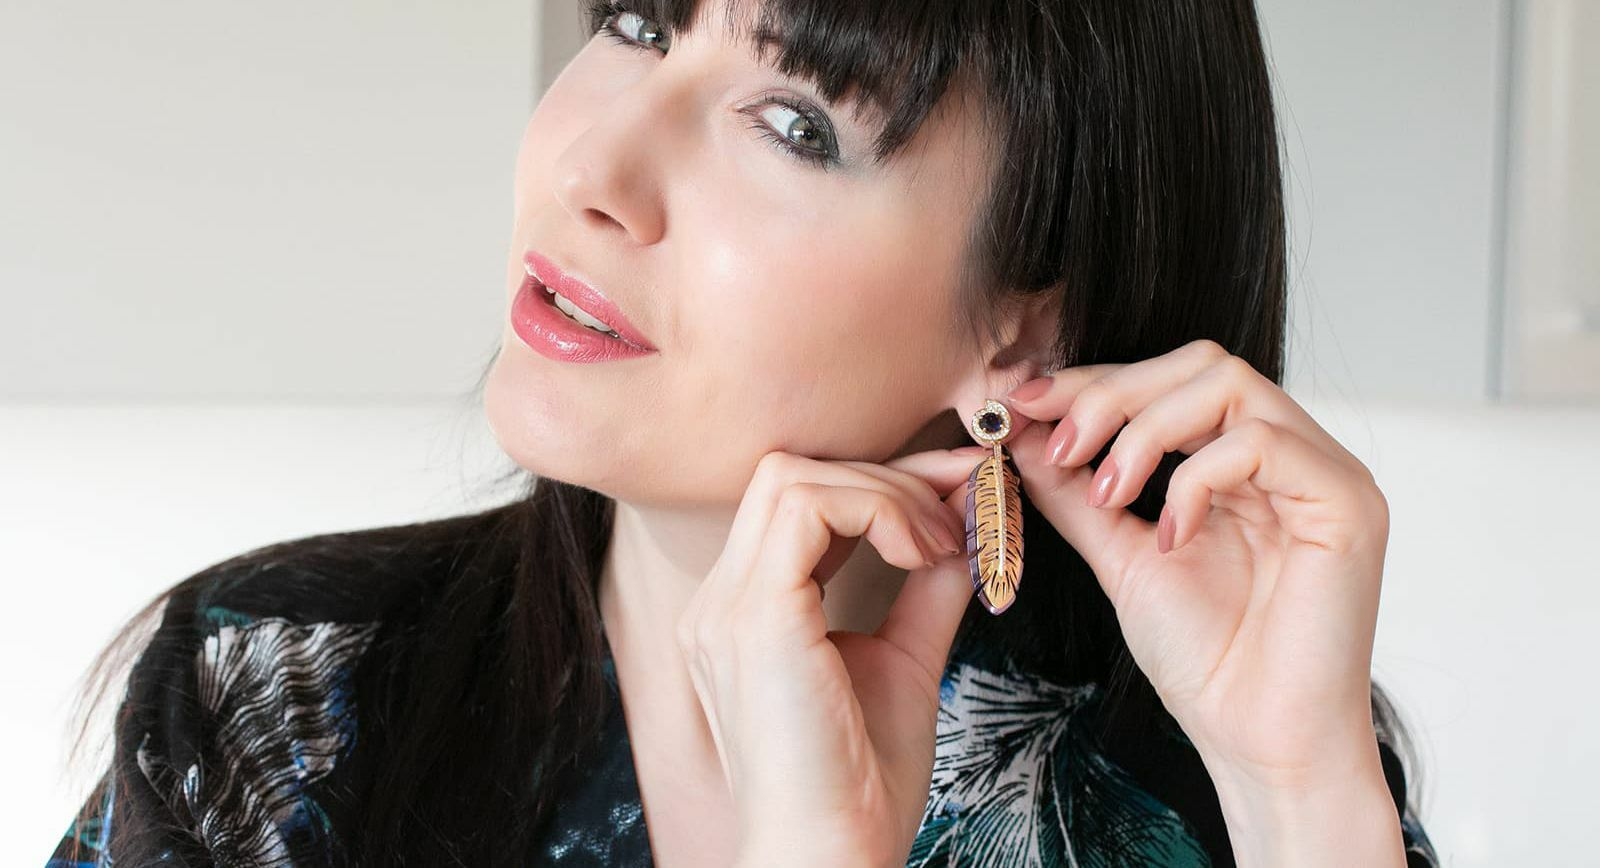 Katerina Perez wearing Carol Kauffmann's new Botanica collection earring